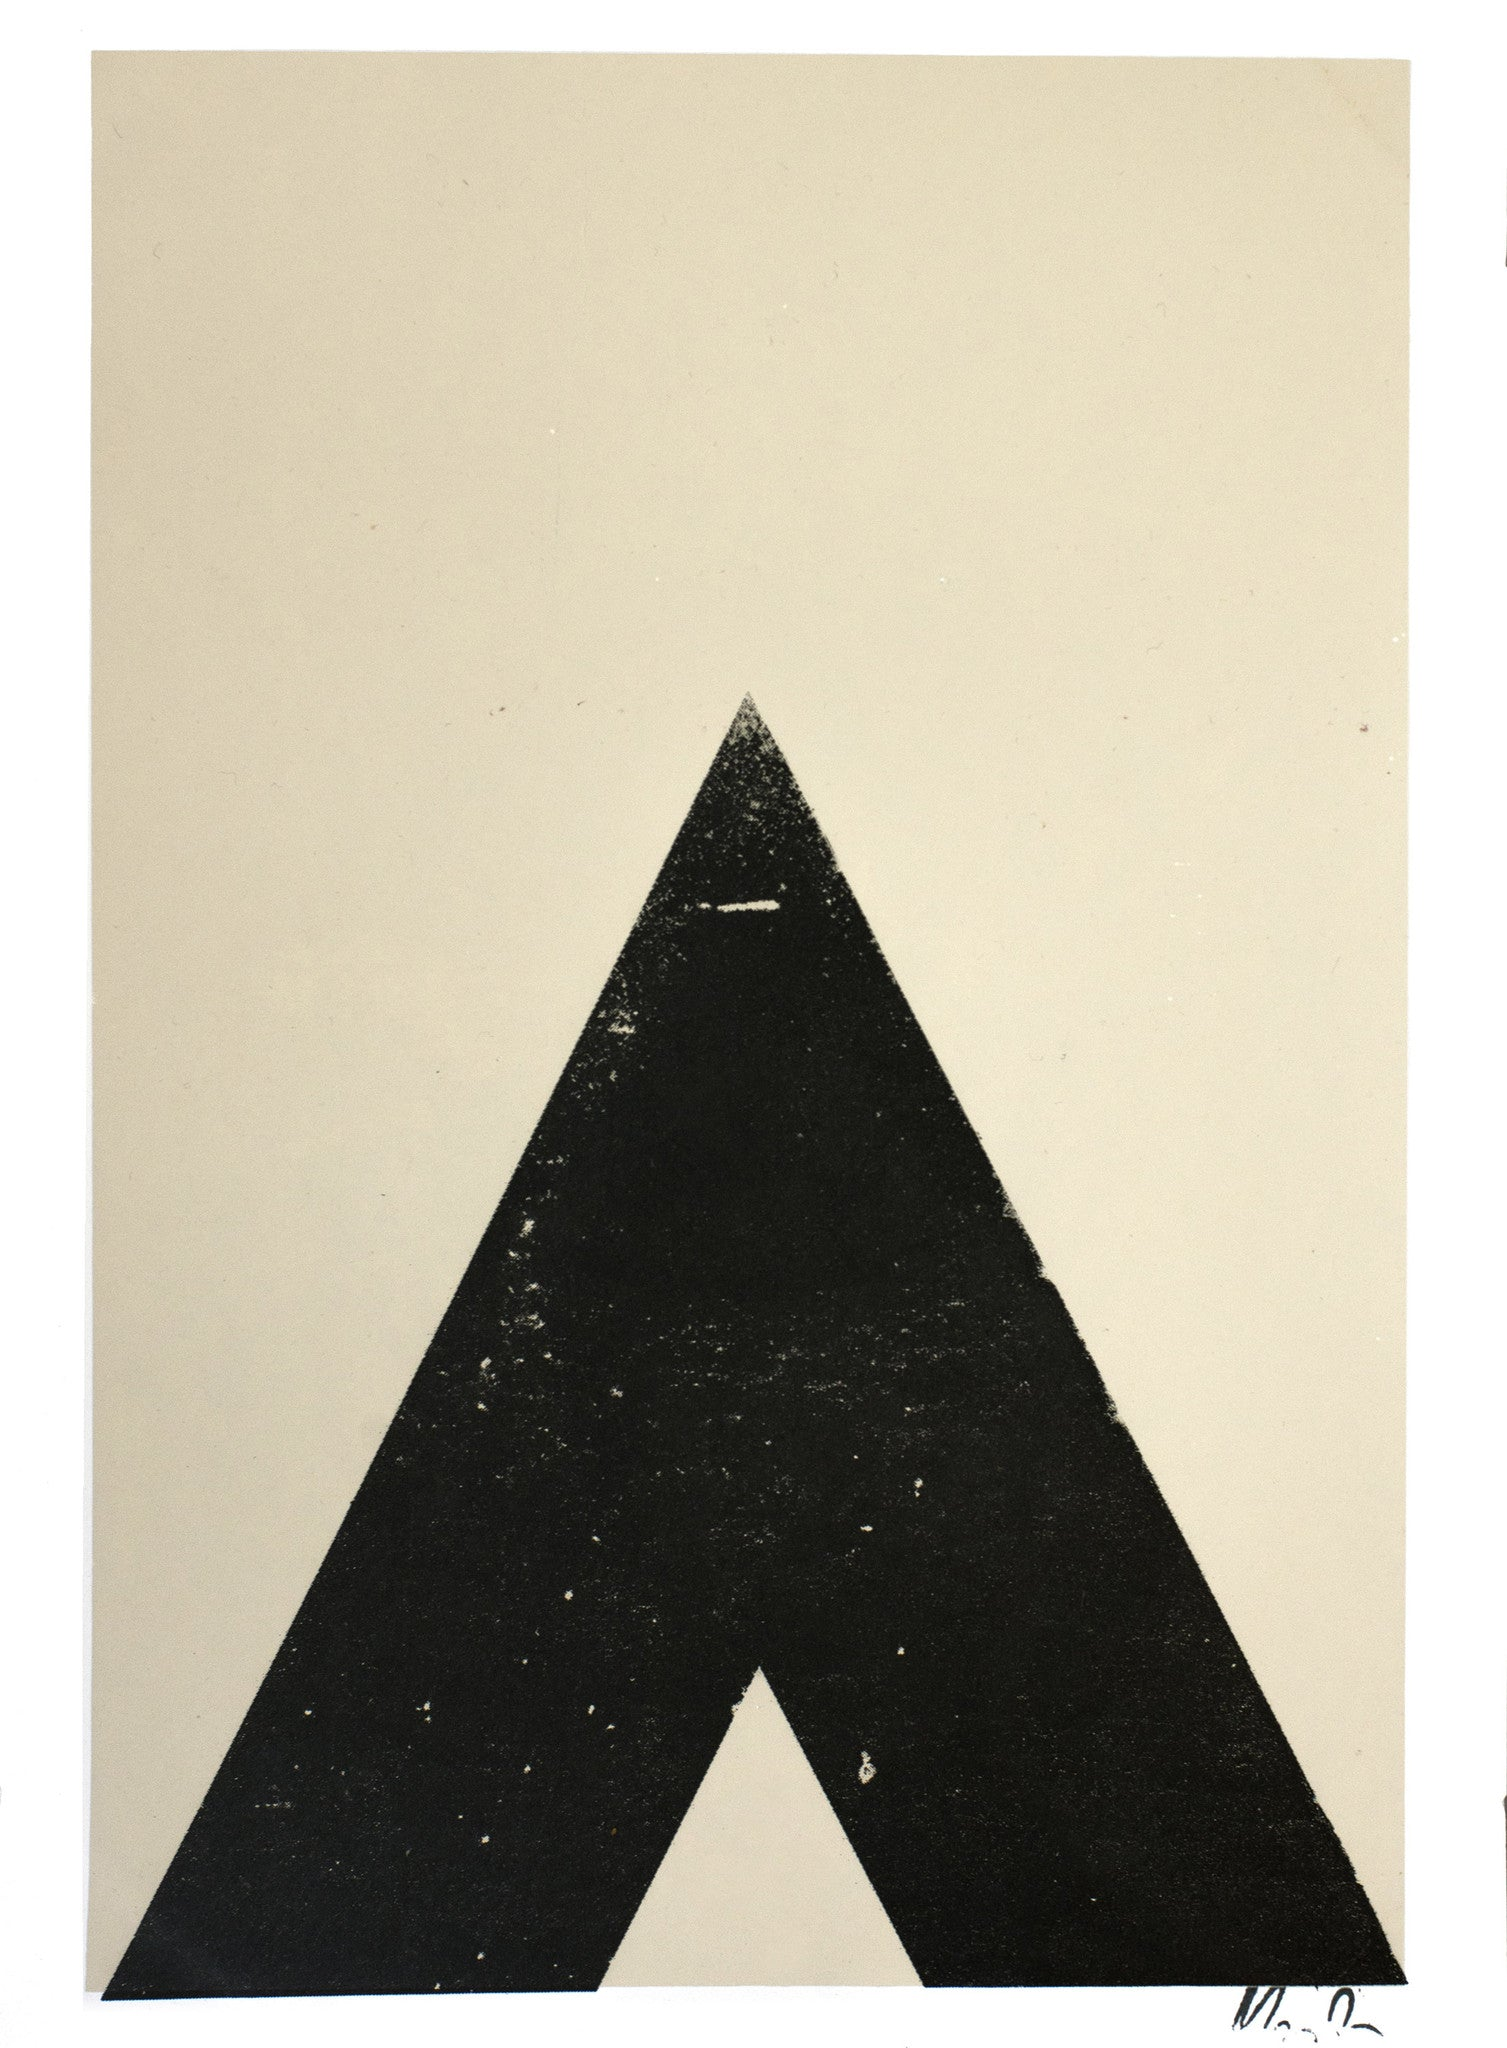 TRIANGLE PRINT - SMALL